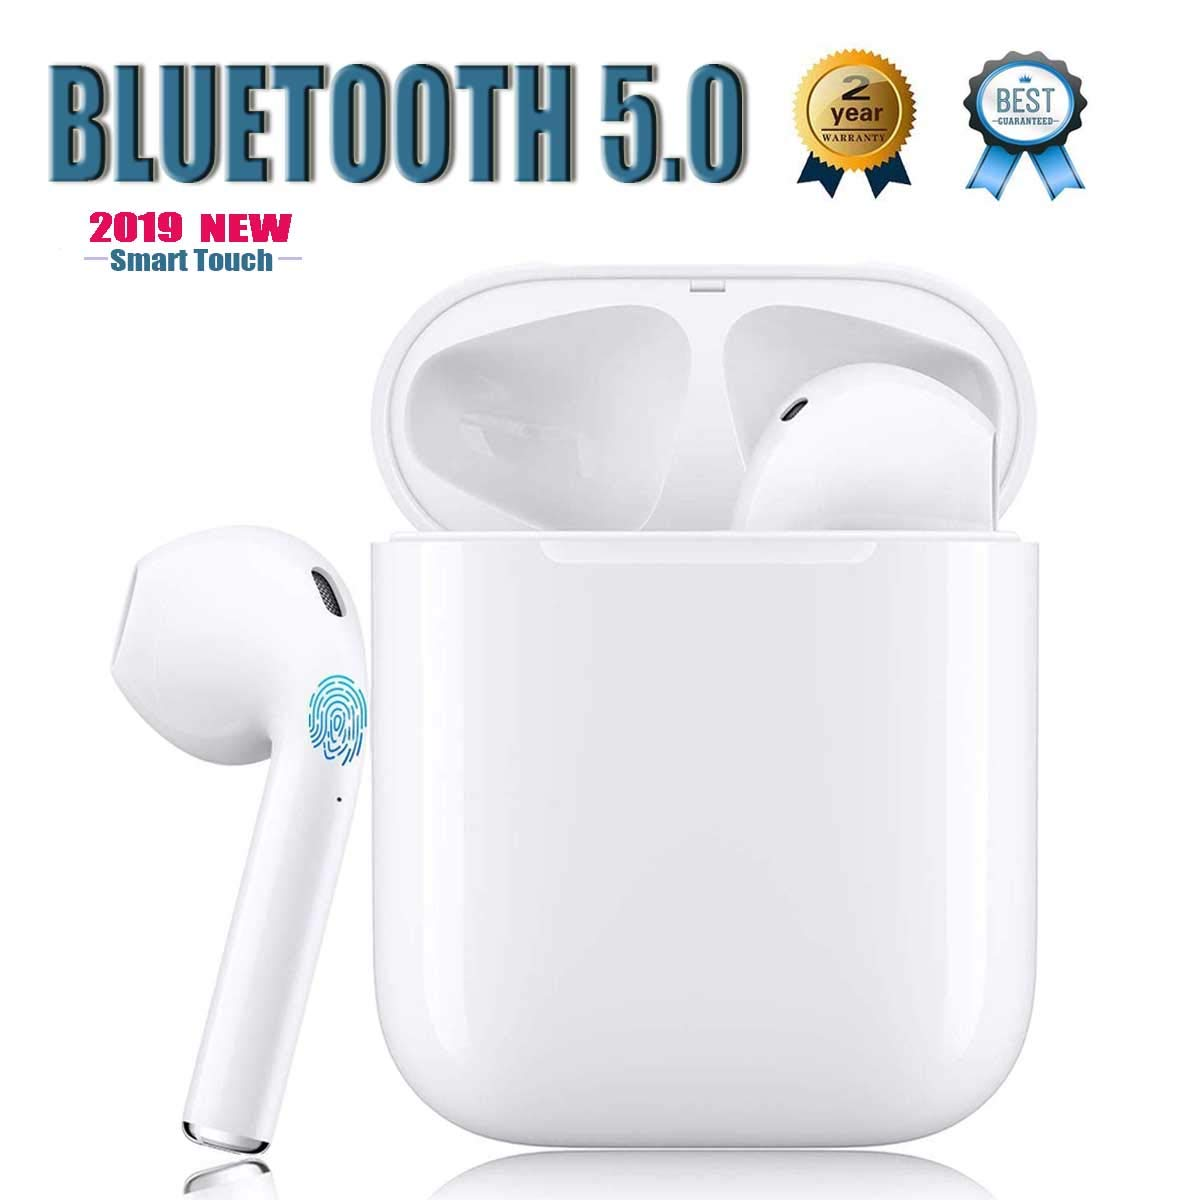 Bluetooth 5.0 wireless Earbuds binaural Smart touch IPX5 waterproof 3D stereo noise canceling with Pop-ups compatible Apple iphone airpod airpods Sports Headset Auto Pairing Fast Charging